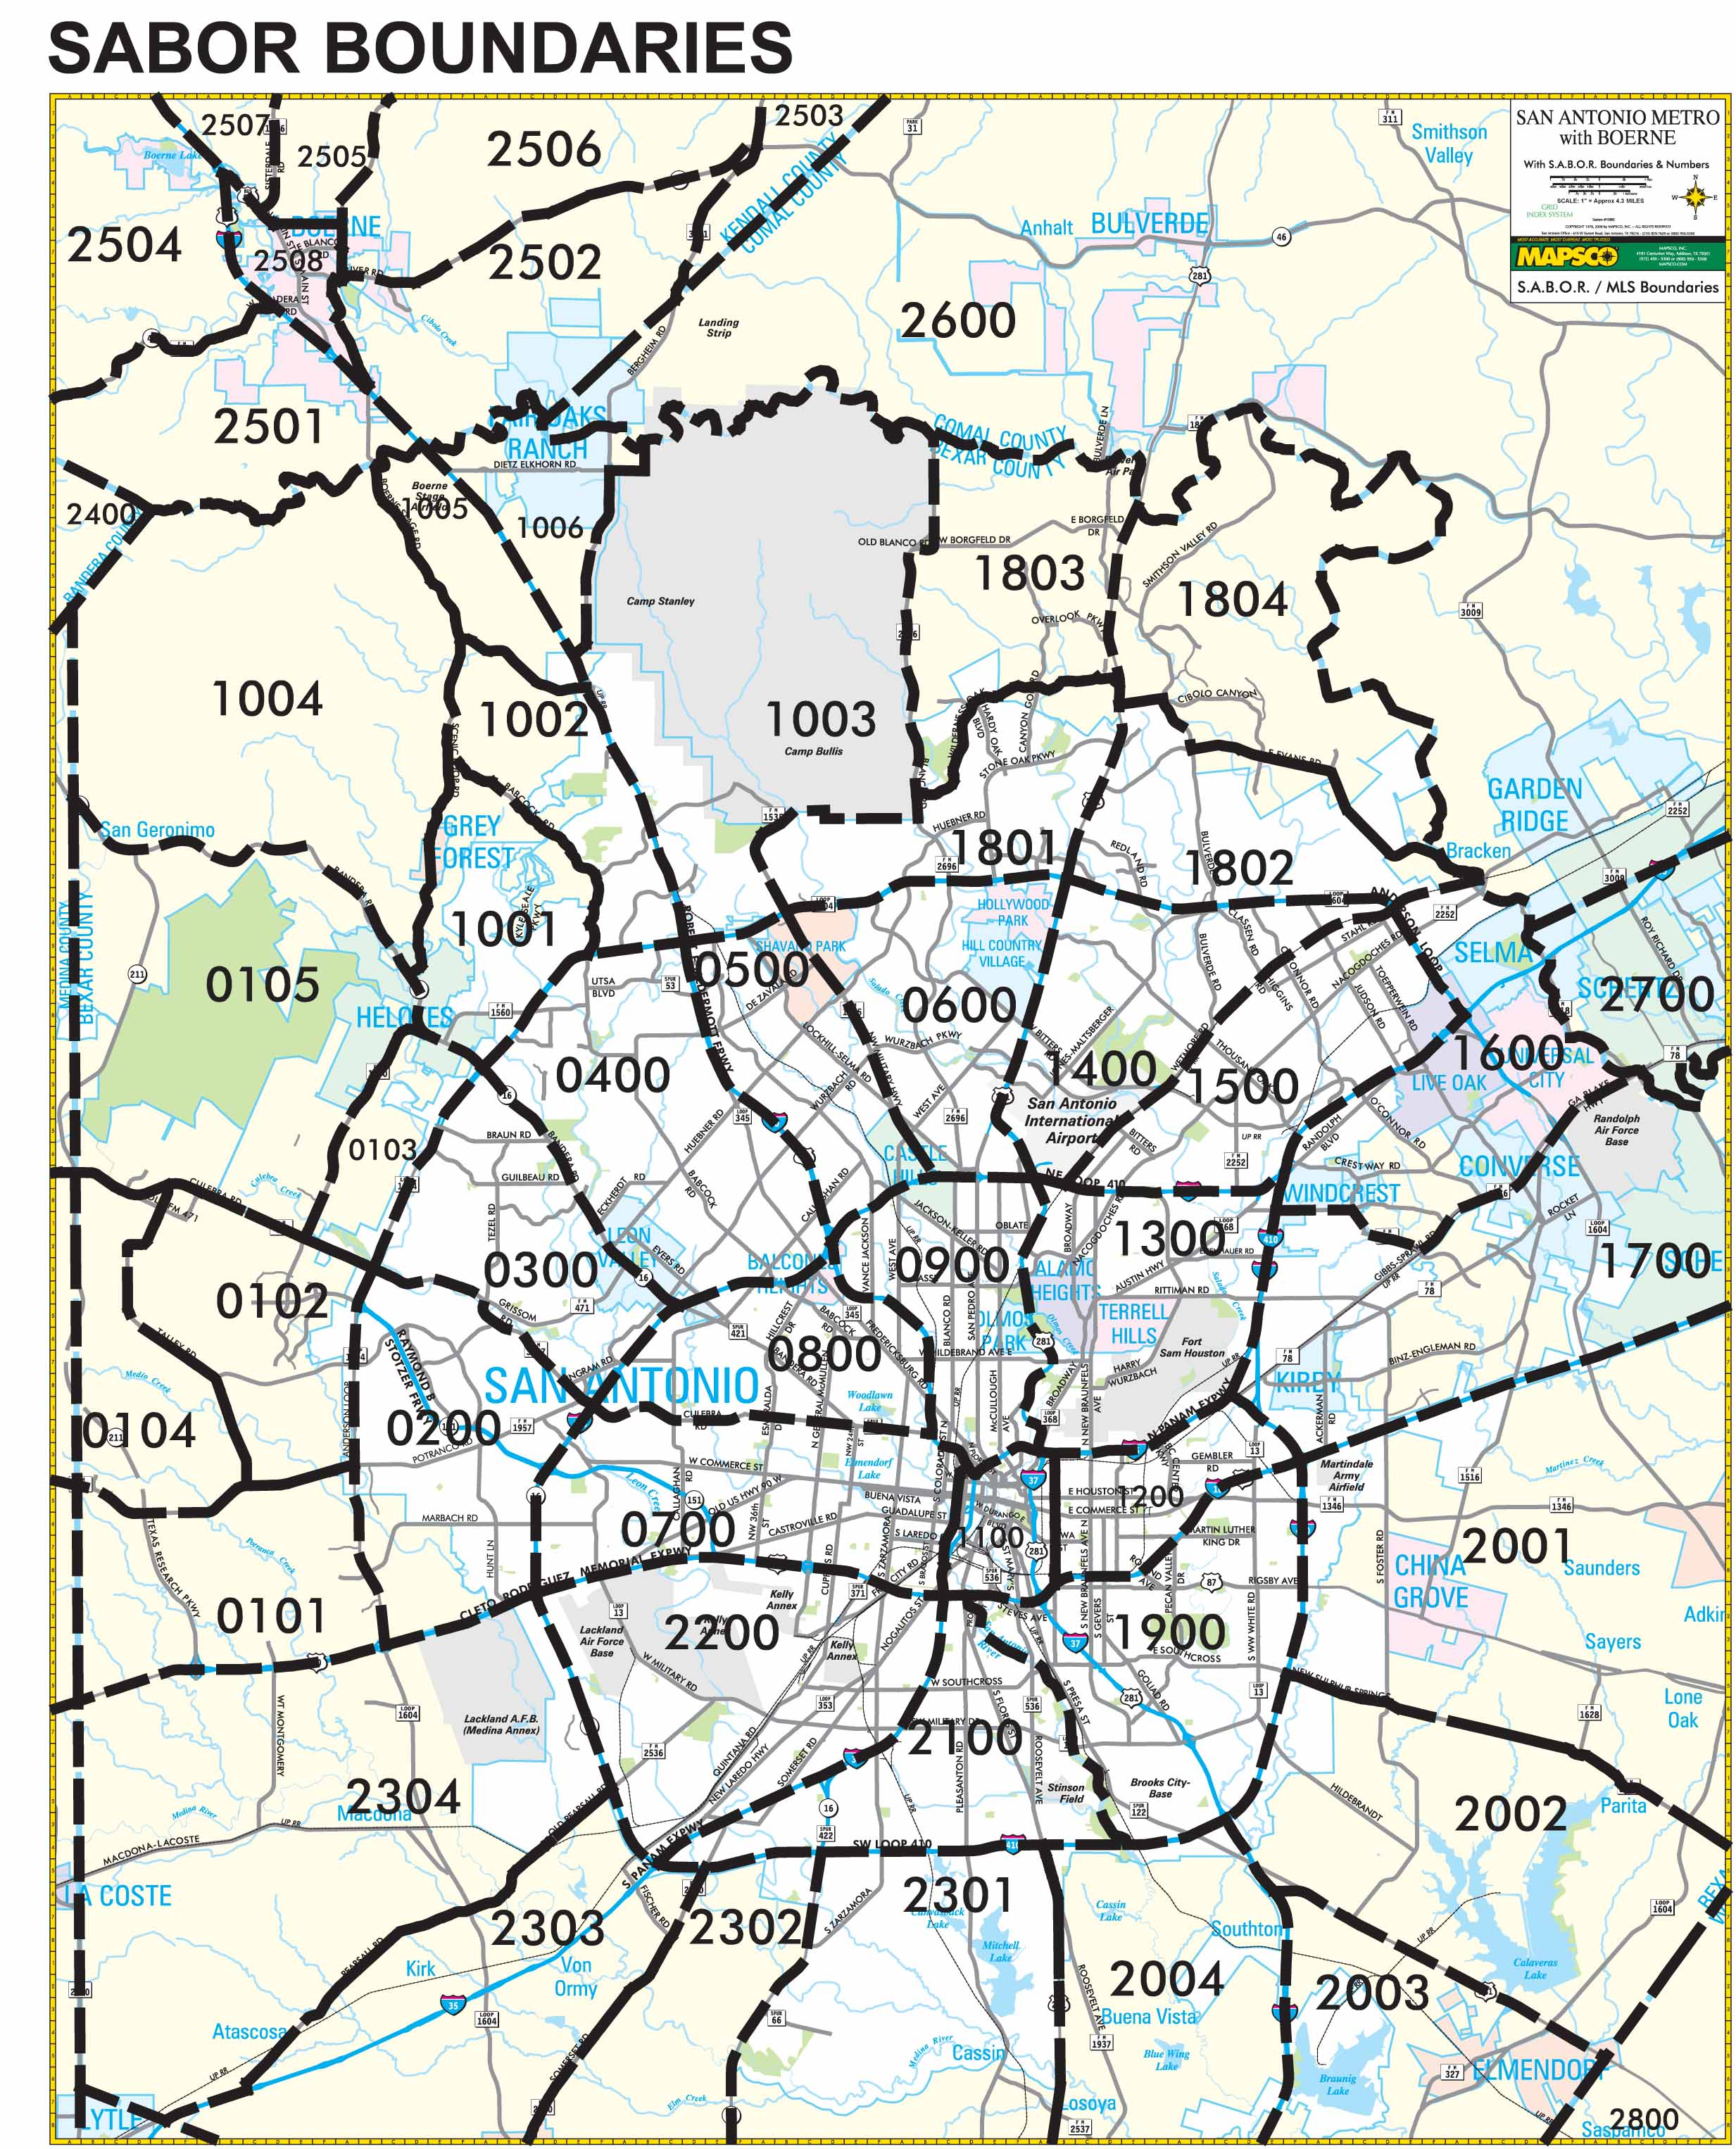 san antonio zip codes on map Zip Code Boundary Map Steve Malouff 210 325 9807 San Antonio san antonio zip codes on map